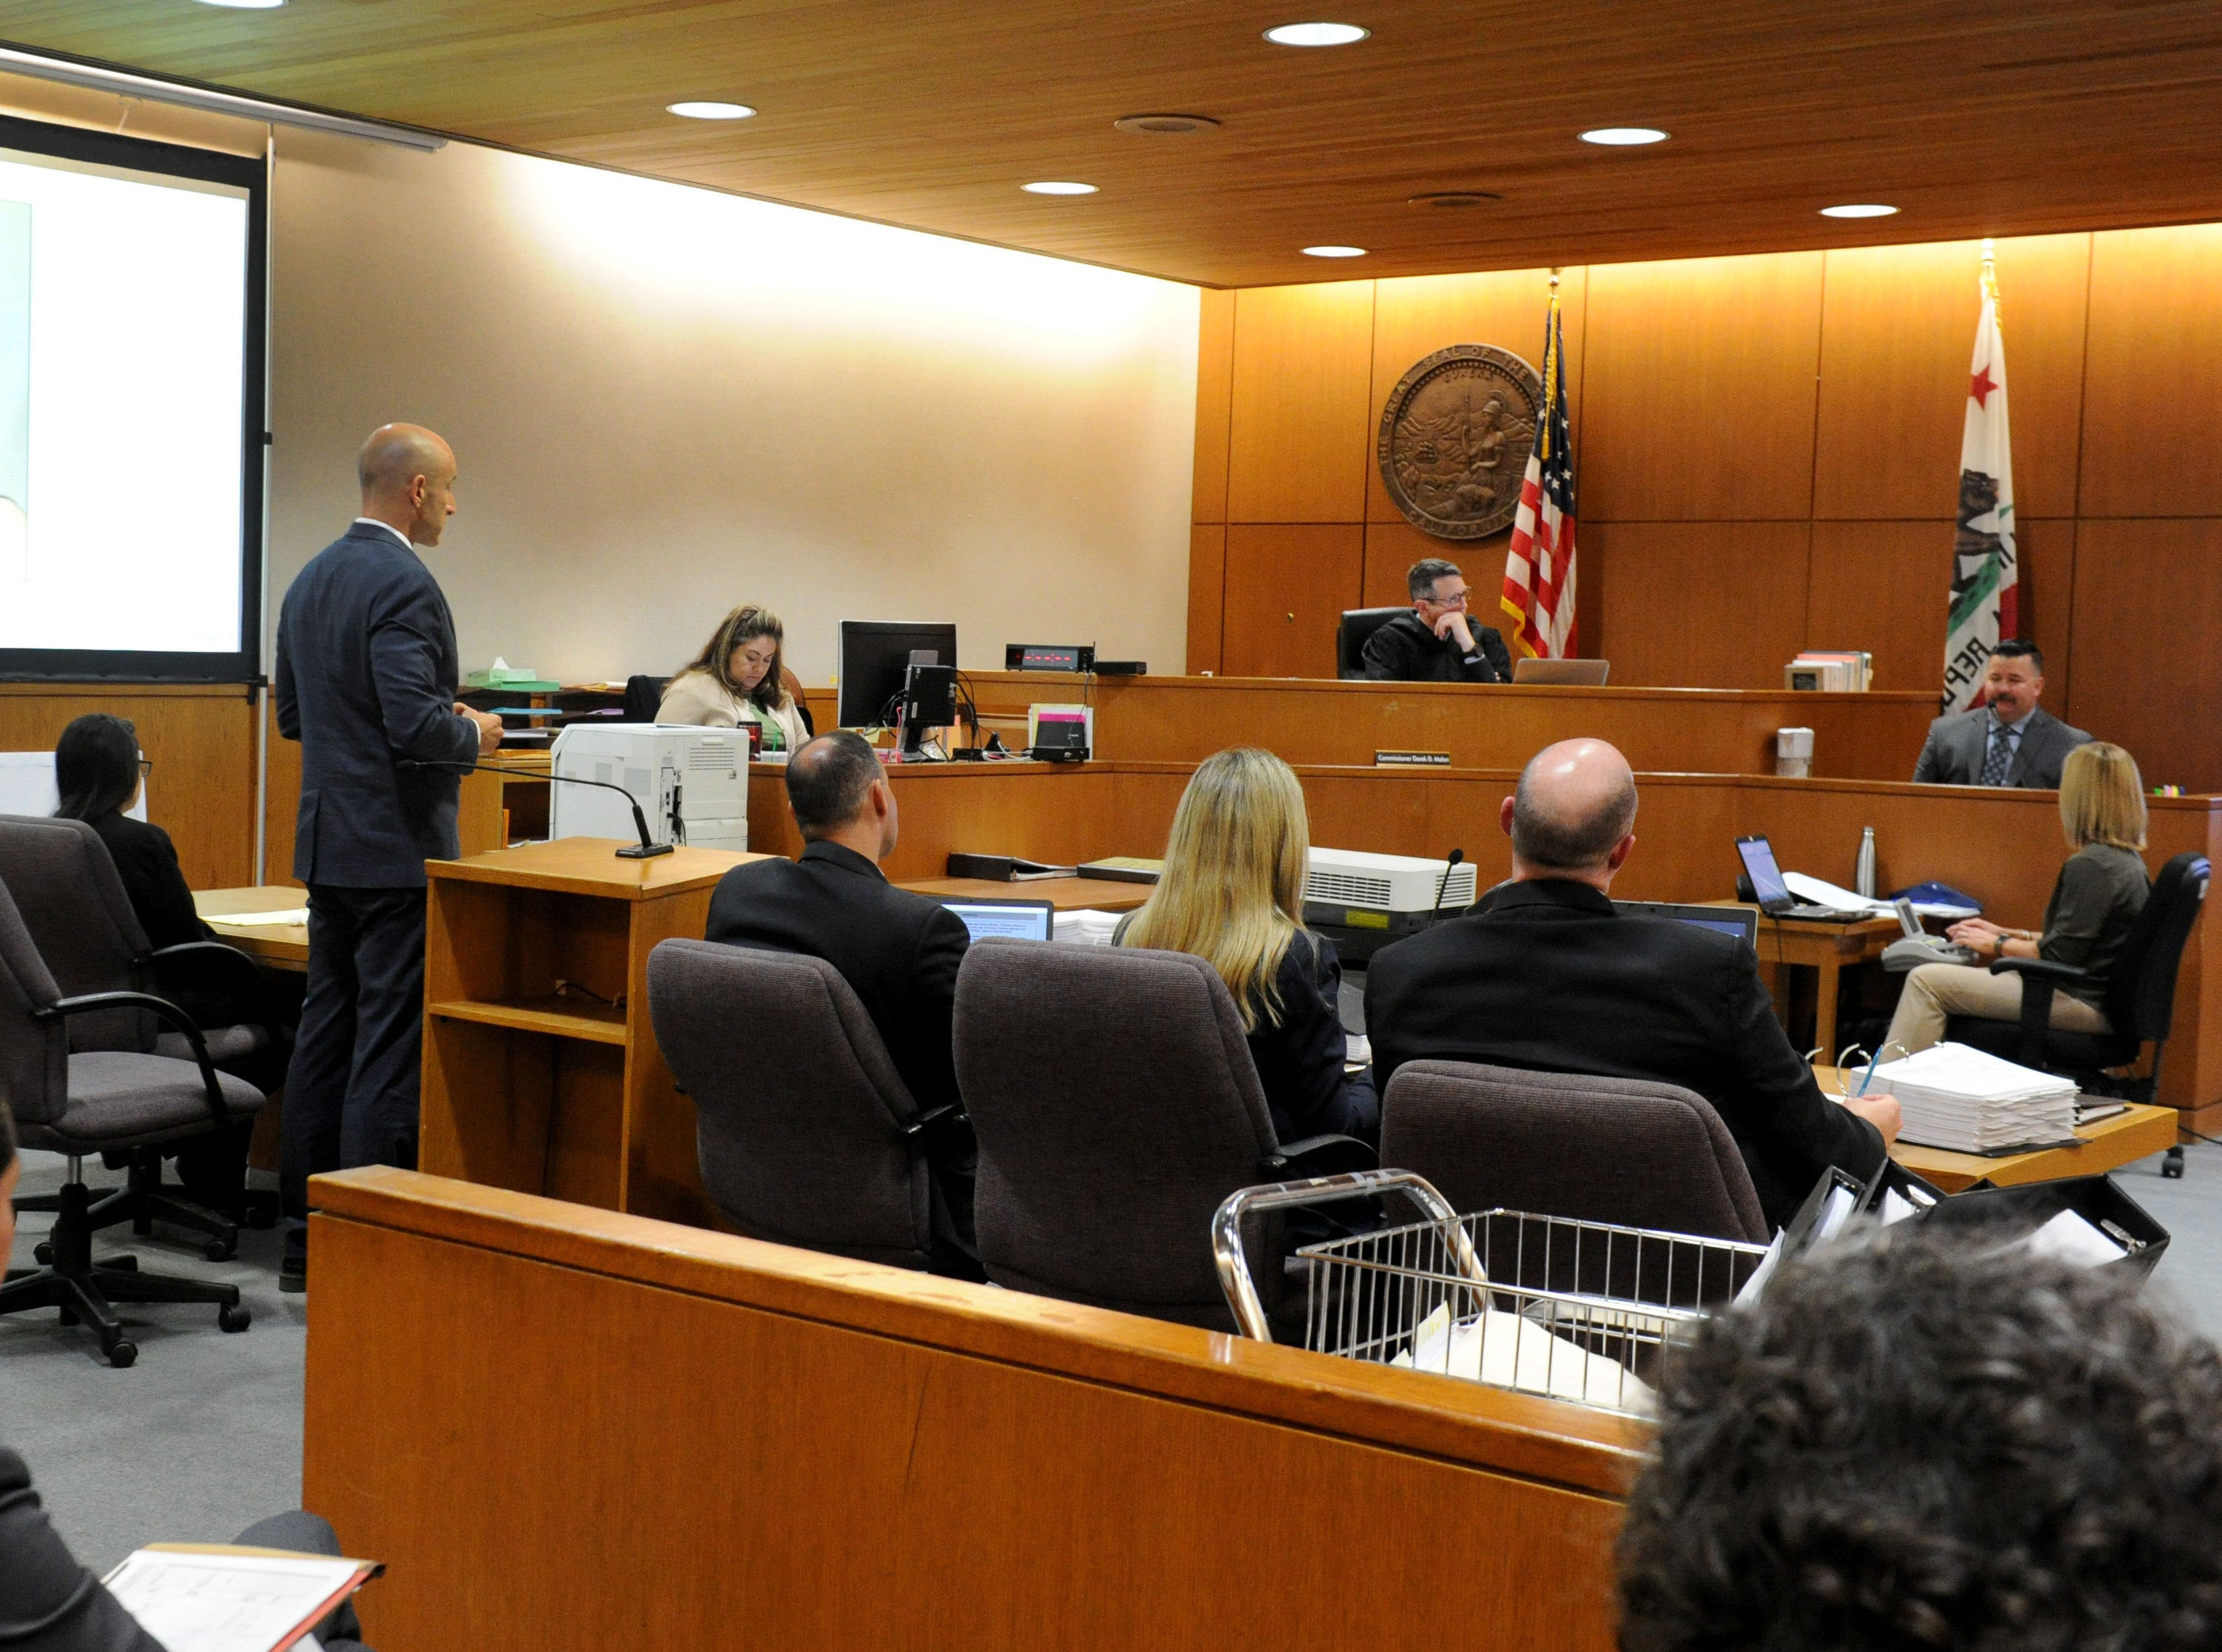 Deputy Public Defender Michael Albers questions a witness Tuesday in the Mayra Chavez trial at Ventura County Superior Court. She is accused of killing her 3-year-old daughter Kimberly Lopez who authorities believe to be dead somewhere in Mexico.